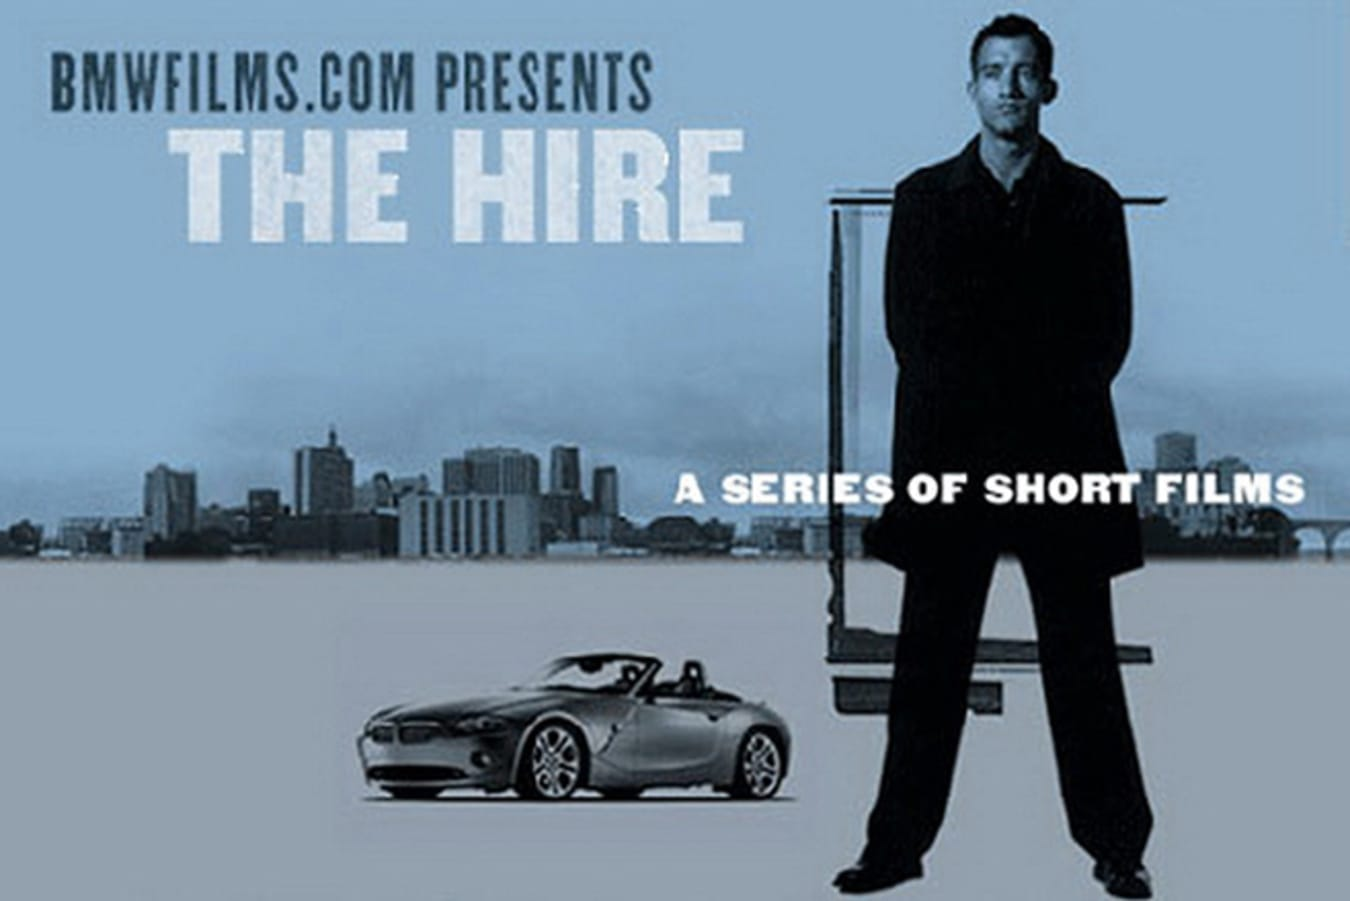 BMW The Hire